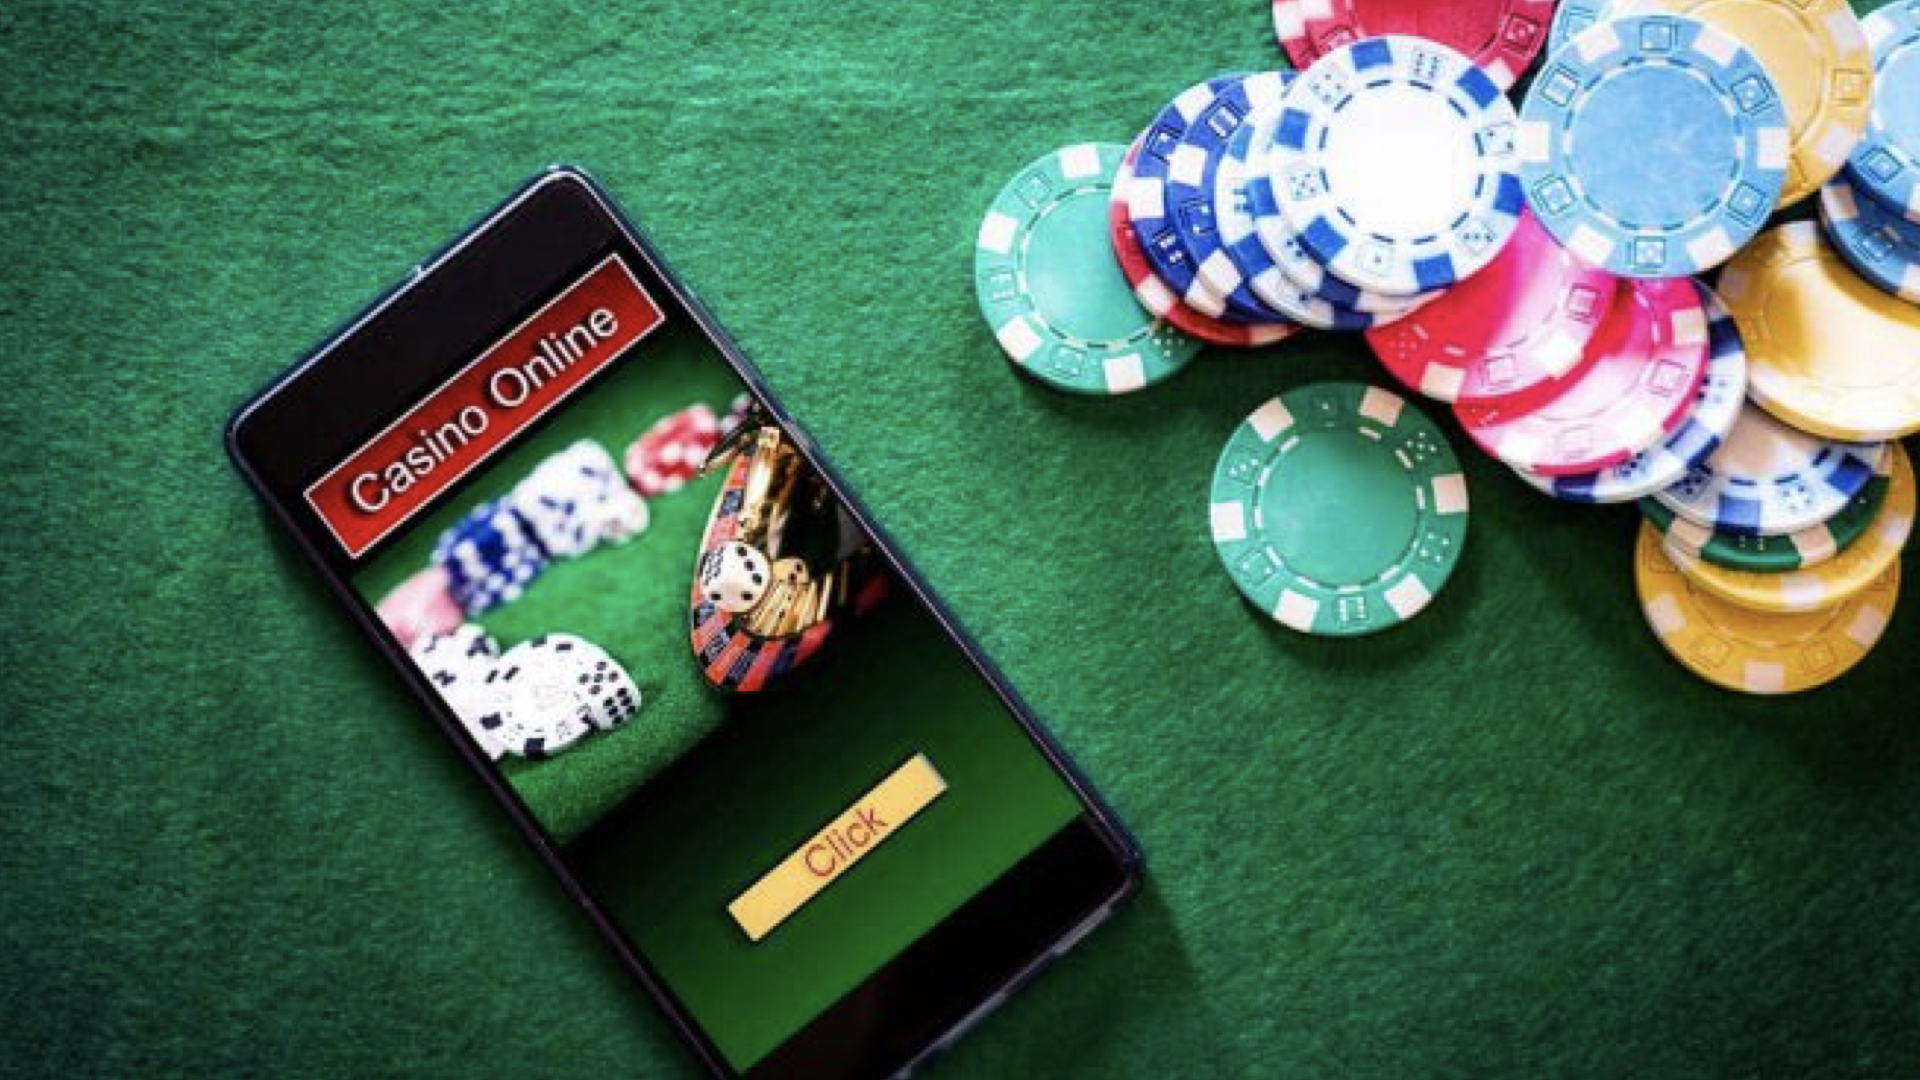 Sagame1688 online slots offer guarantees of all payouts